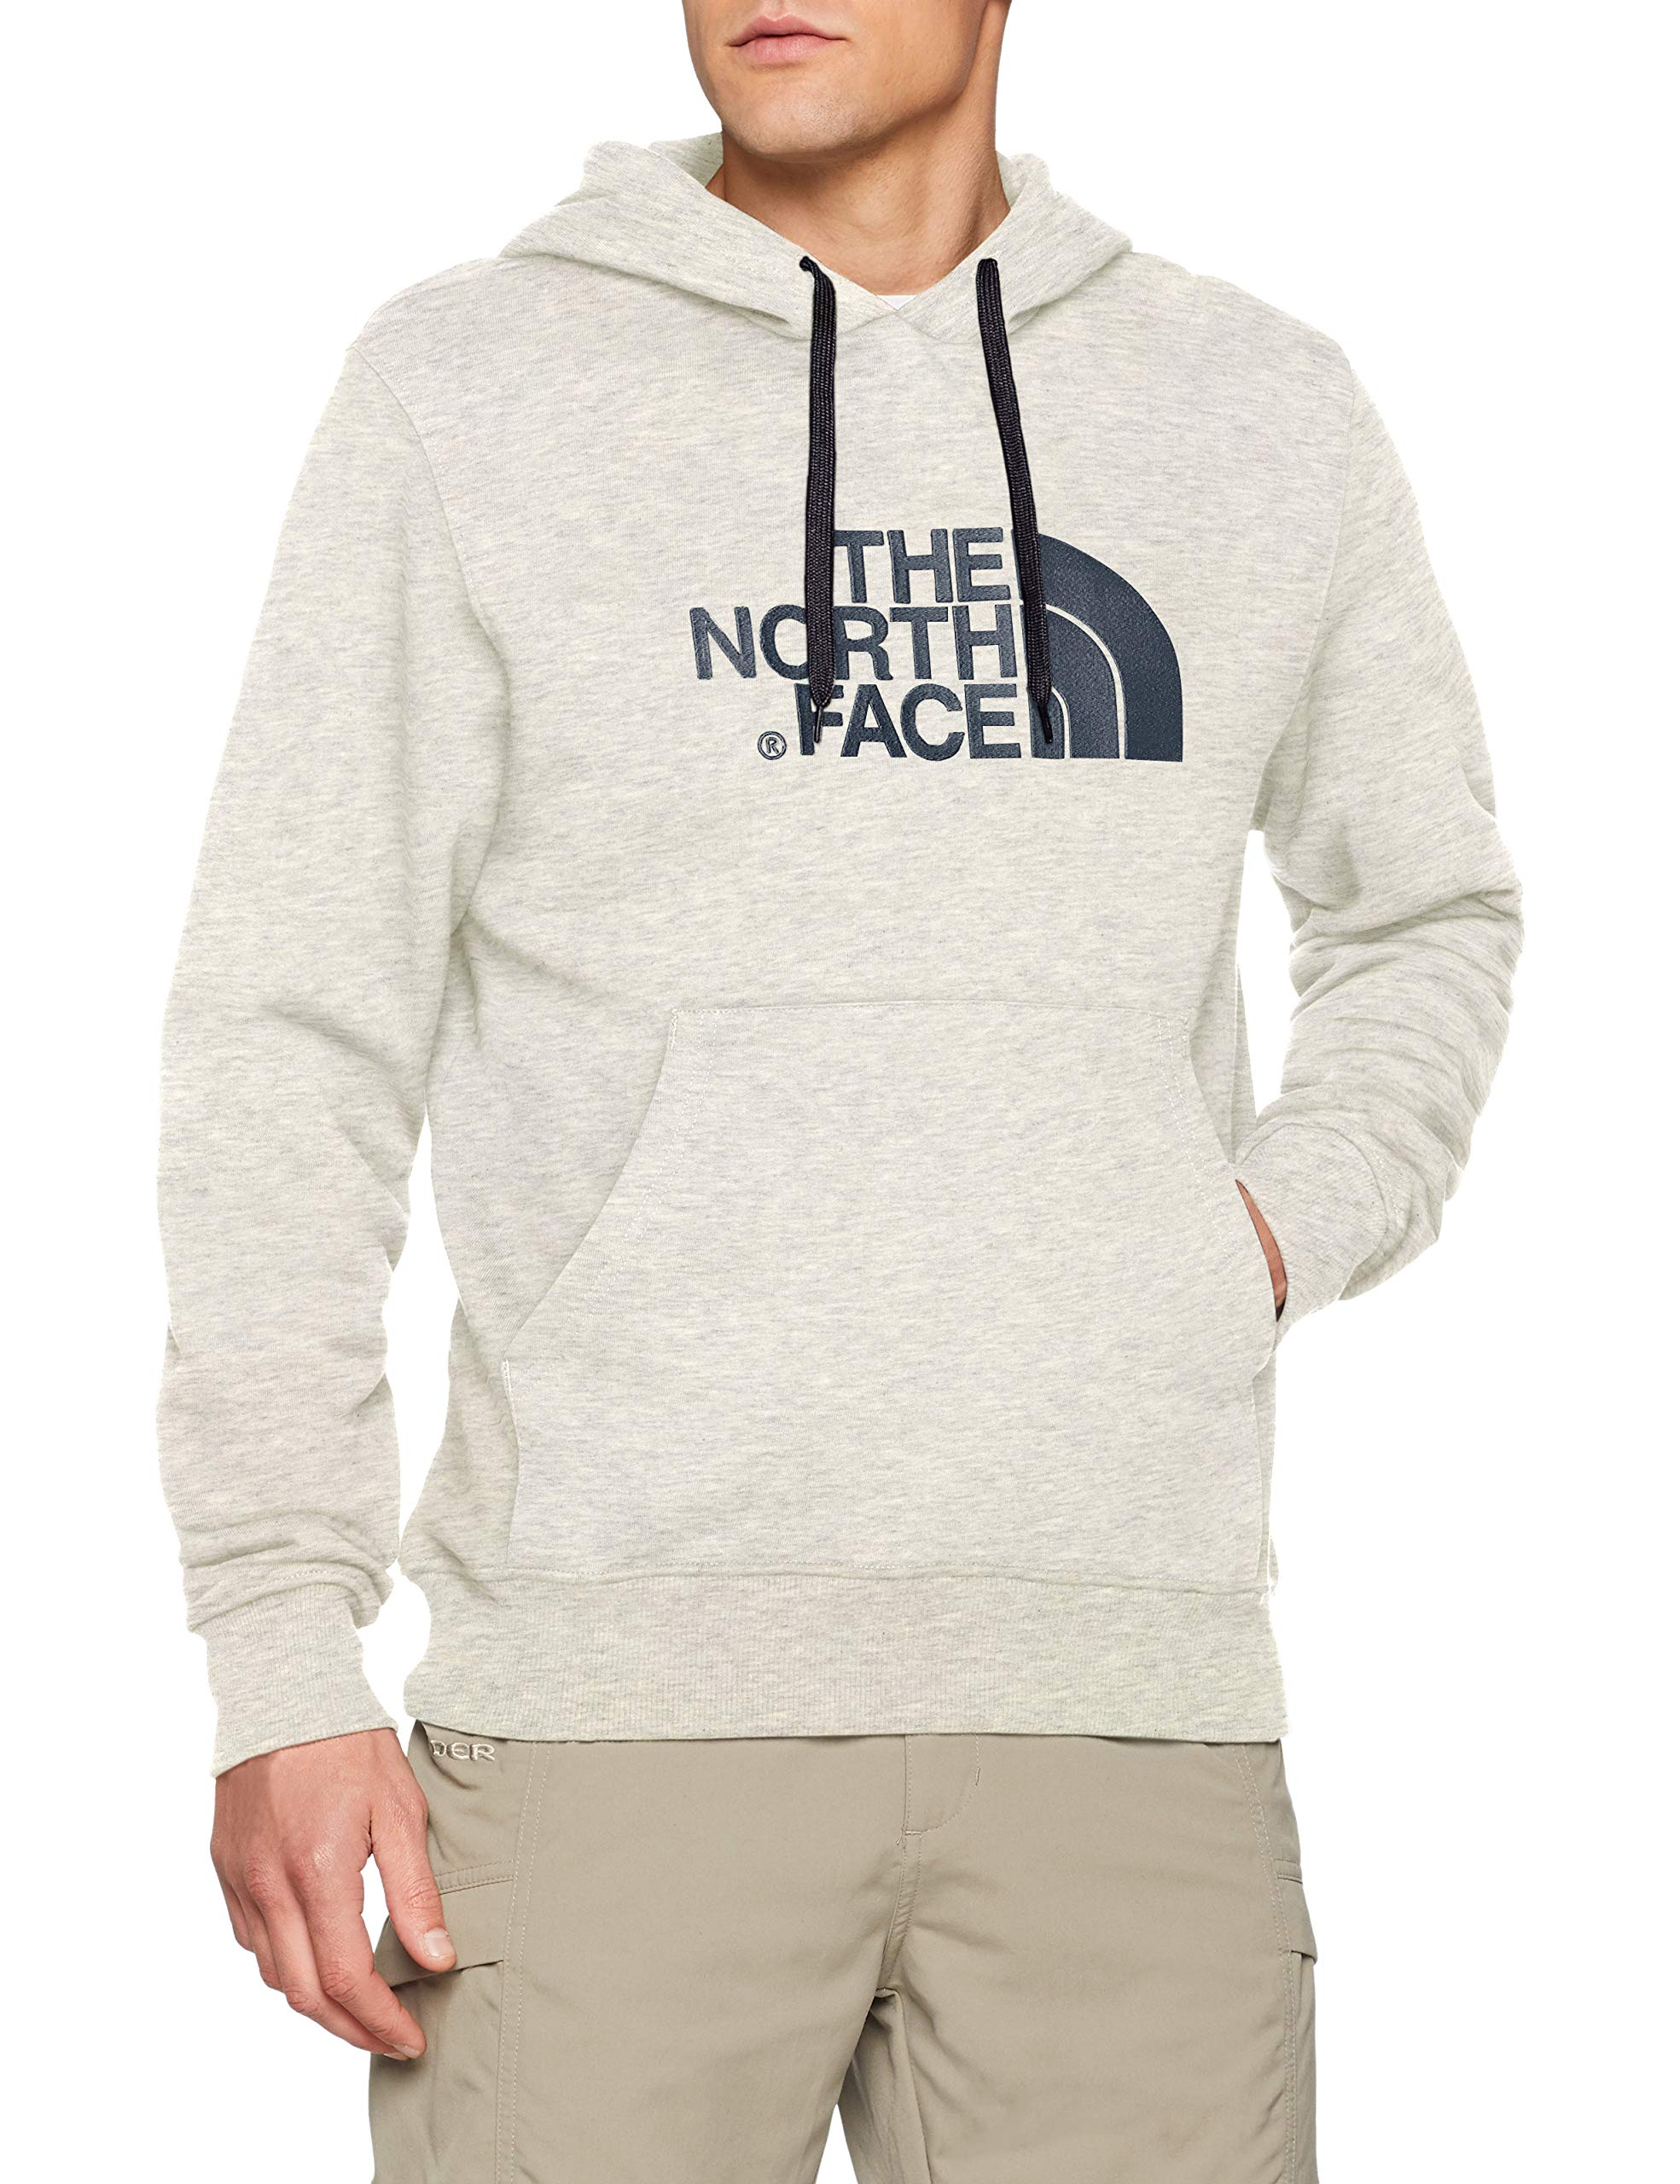 The North Face, M Drew Peak Plv Hd, Felpa con Cappuccio, Uomo Marche Famose